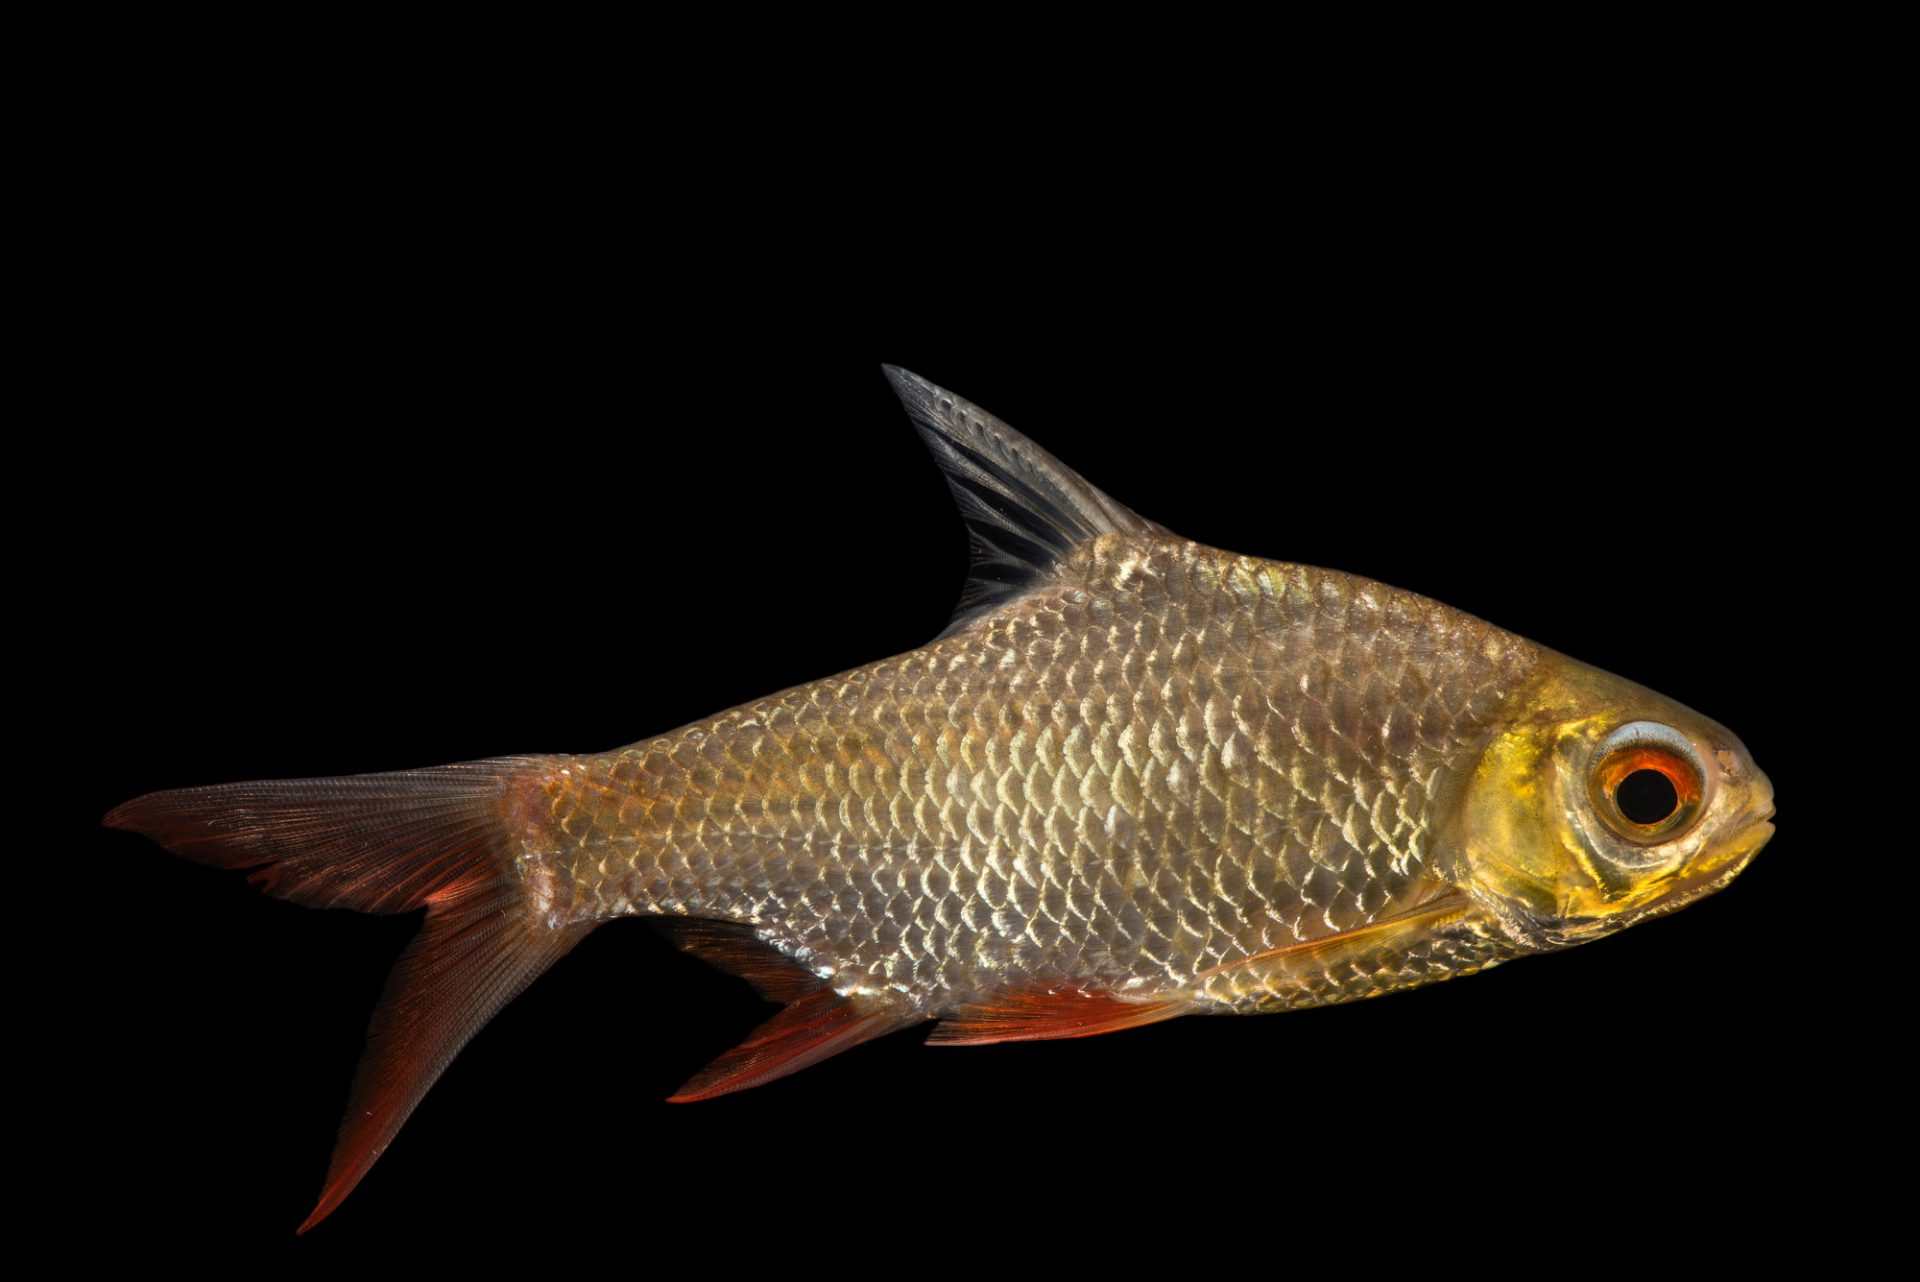 Photo: Red-tailed tinfoil barb (Barbonymus altus) at Zoo Negara.